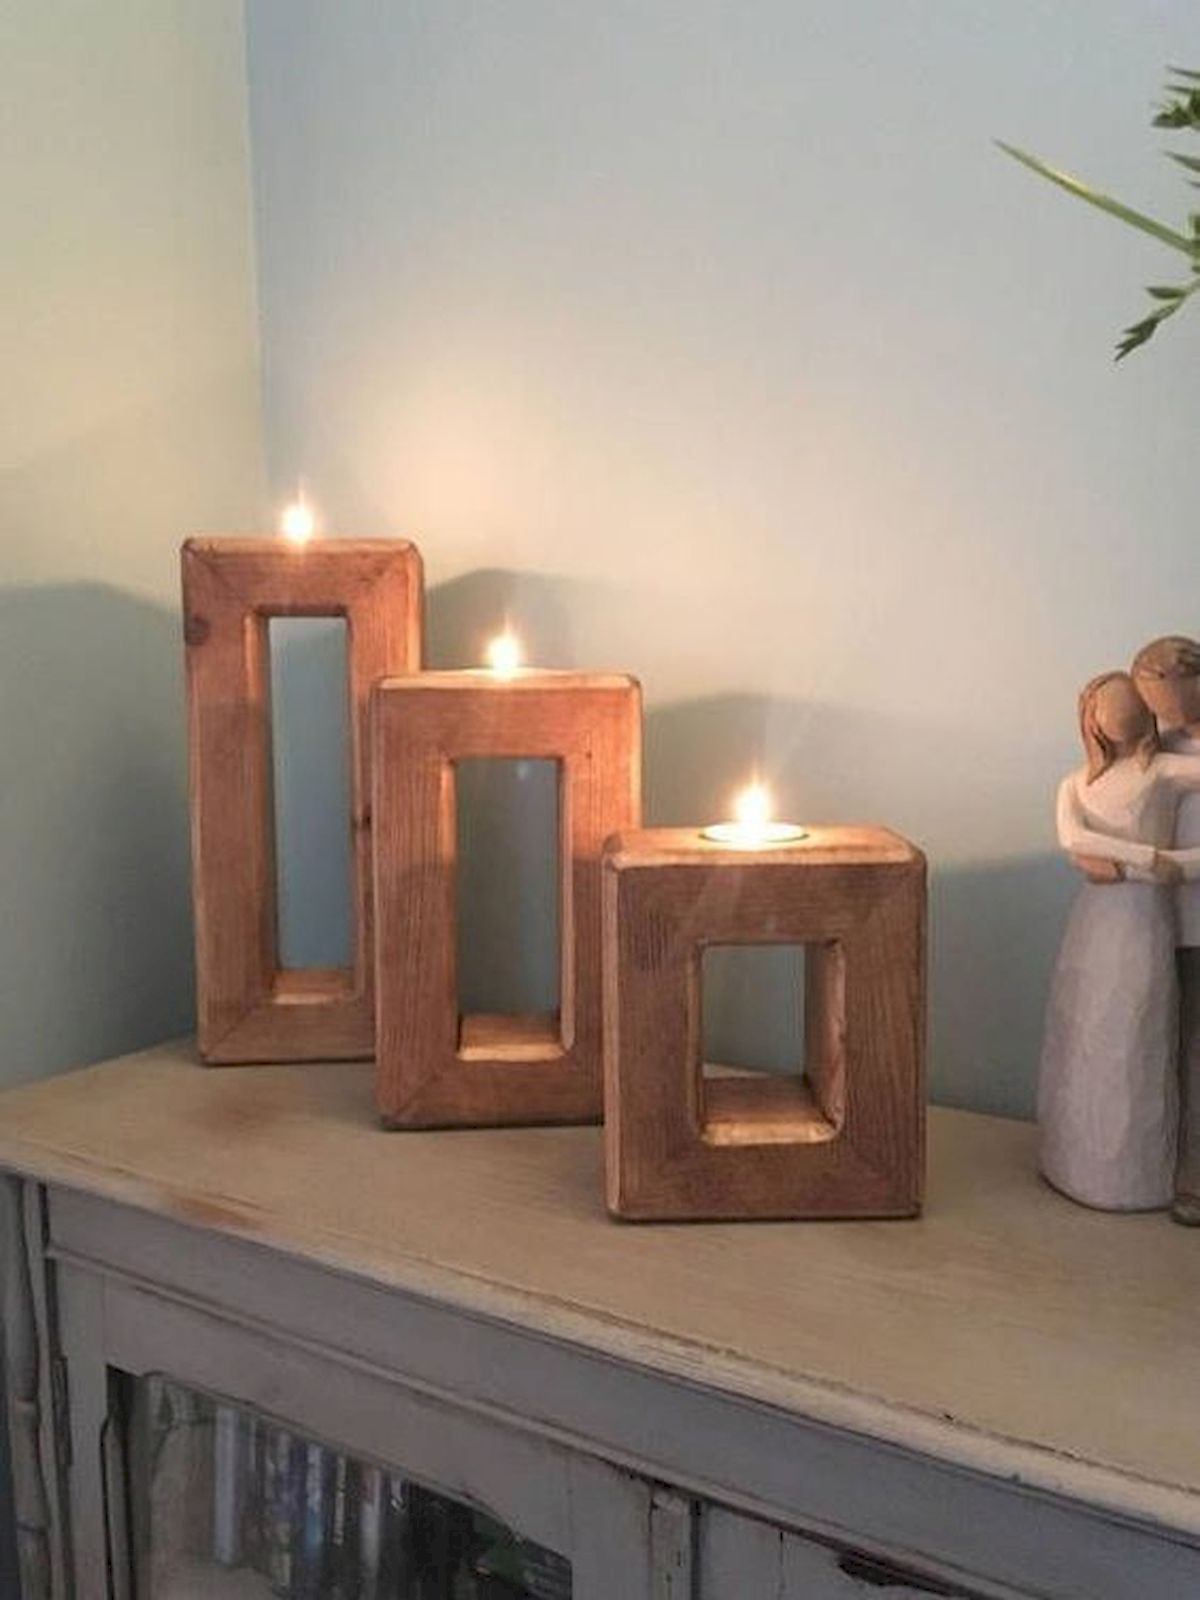 60 Easy DIY Wood Projects for Beginners #woodprojects